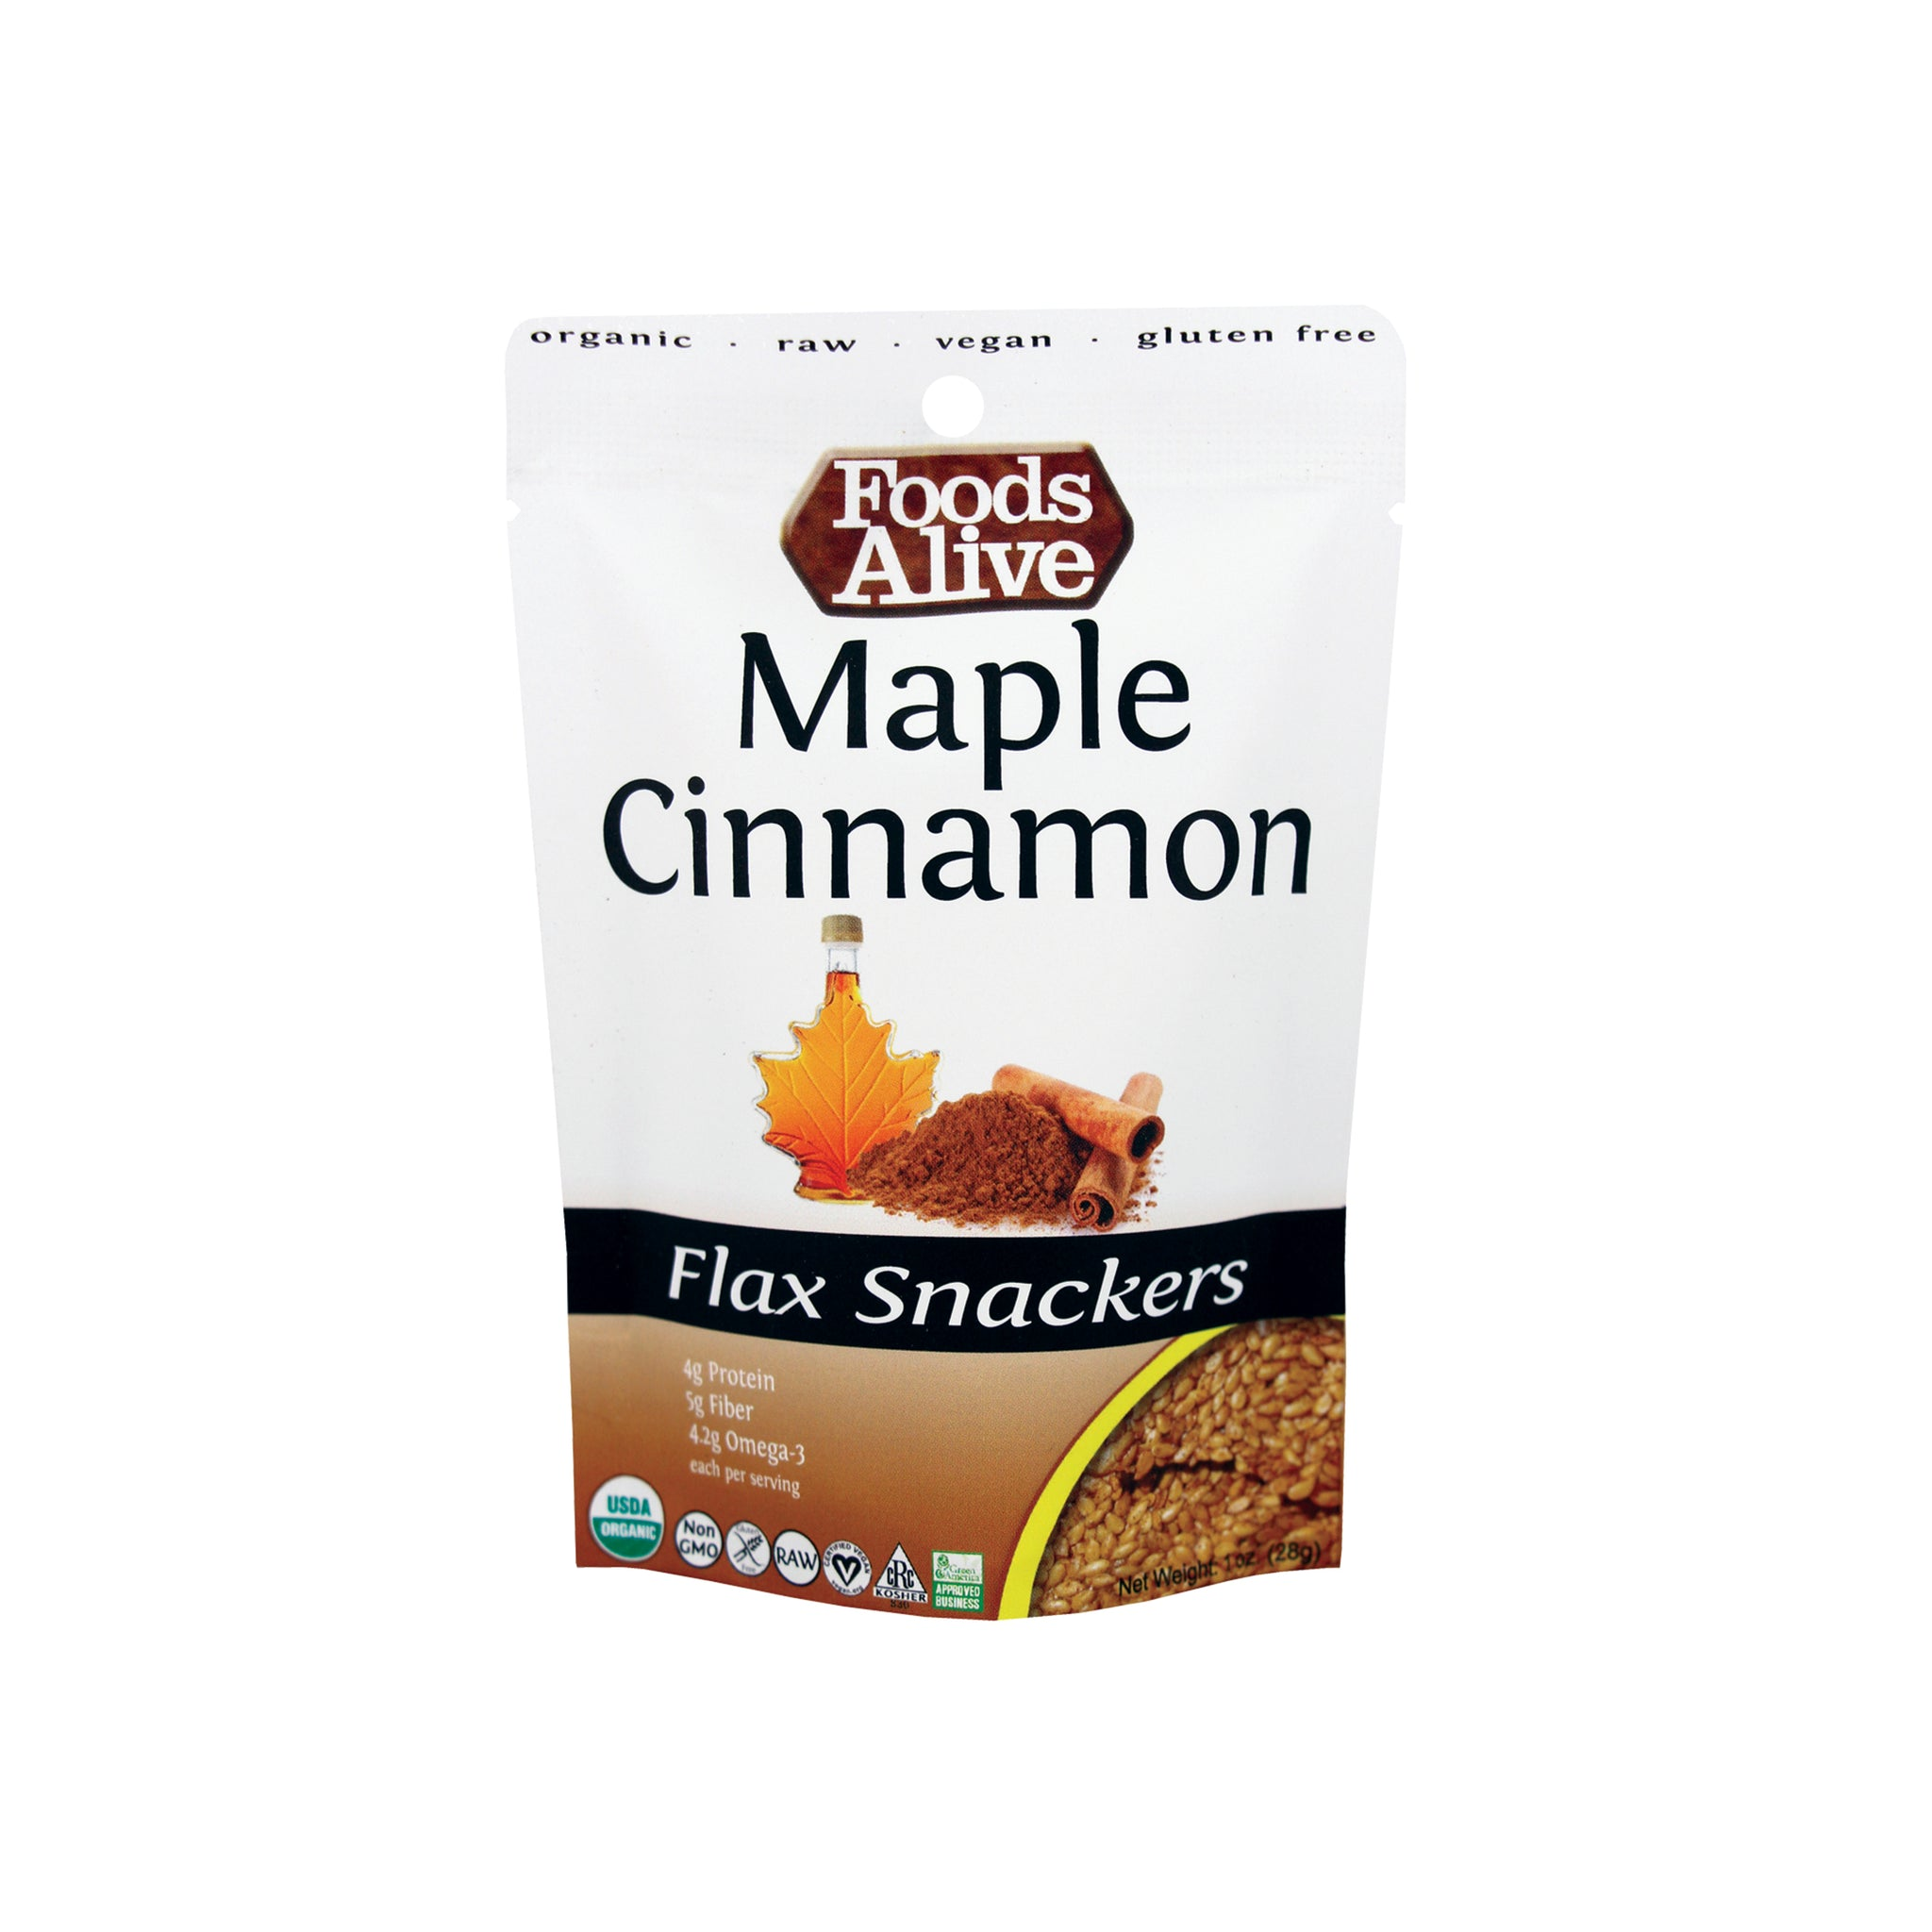 Foods Alive - Organic Flax Snackers - Maple Cinnamon - 1 oz